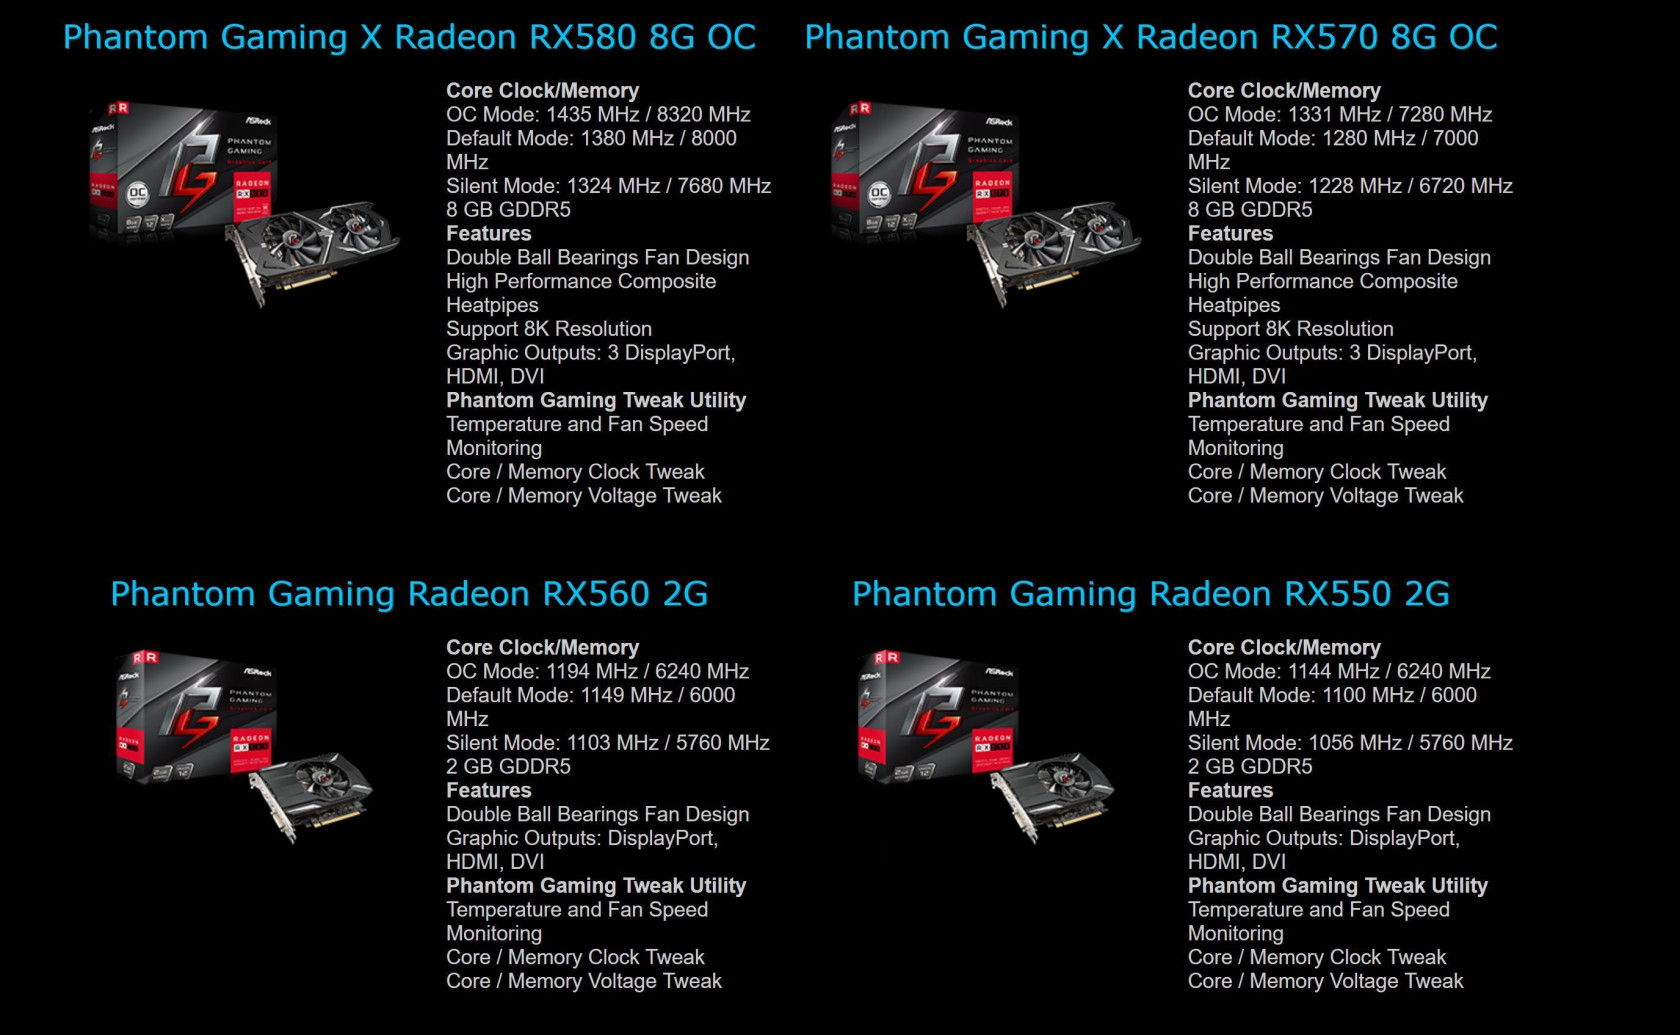 ASRock enters graphics card market with Radeon-based Phantom Gaming